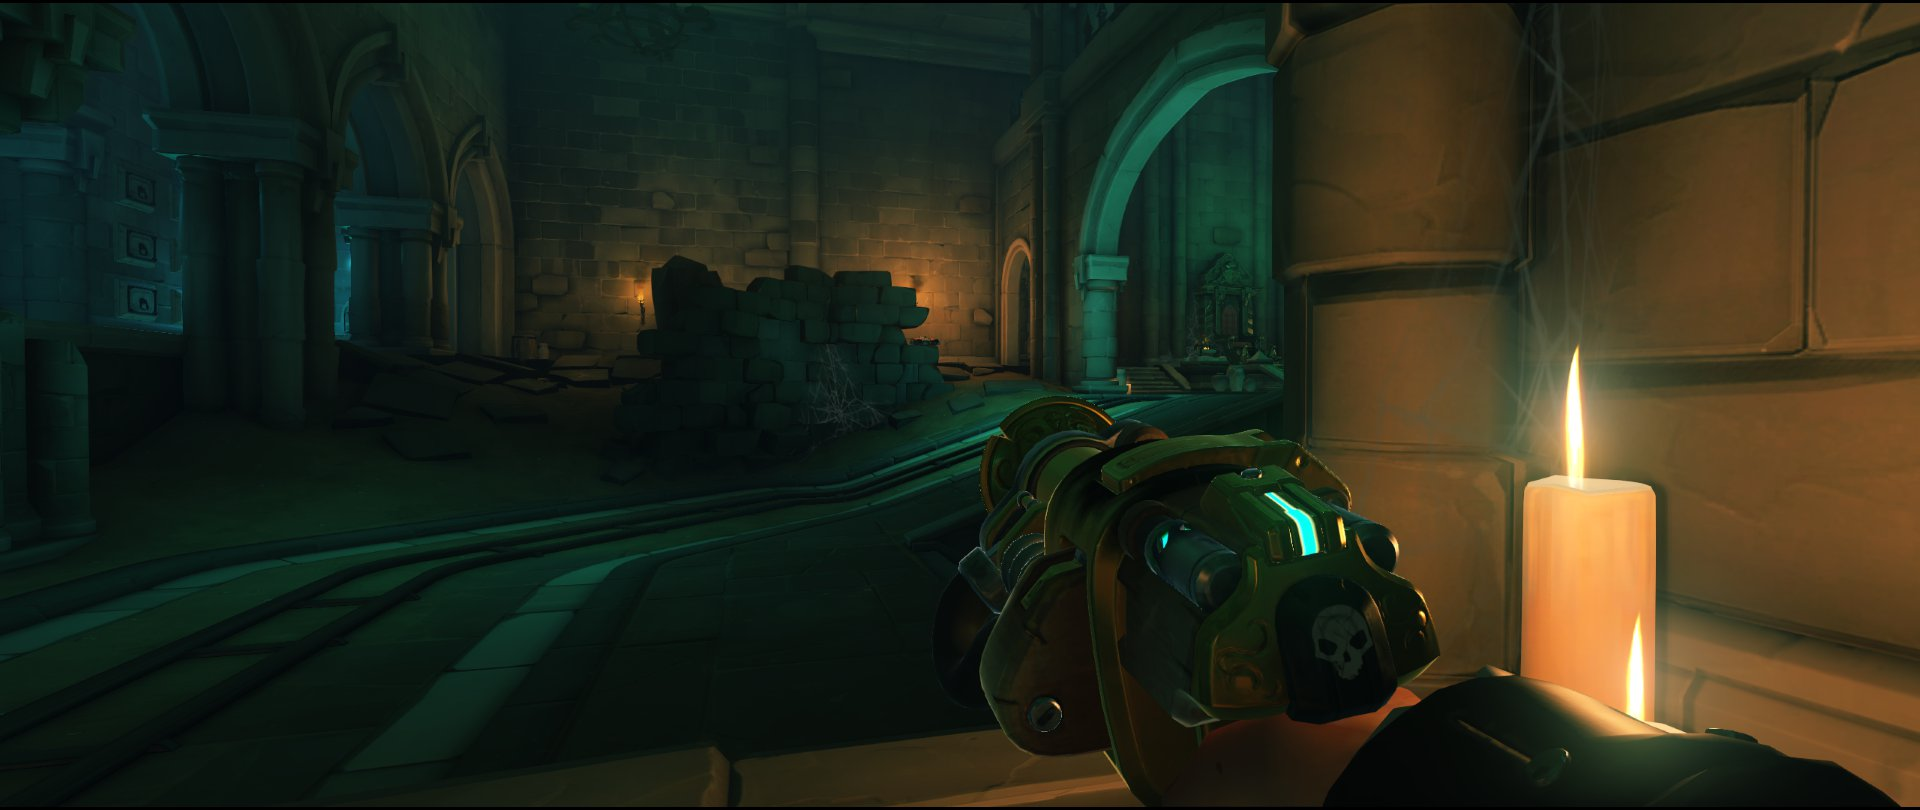 Left+side+wall+back+view+turret+placement+spot+Torbjorn+Blizzard+World+Overwatch